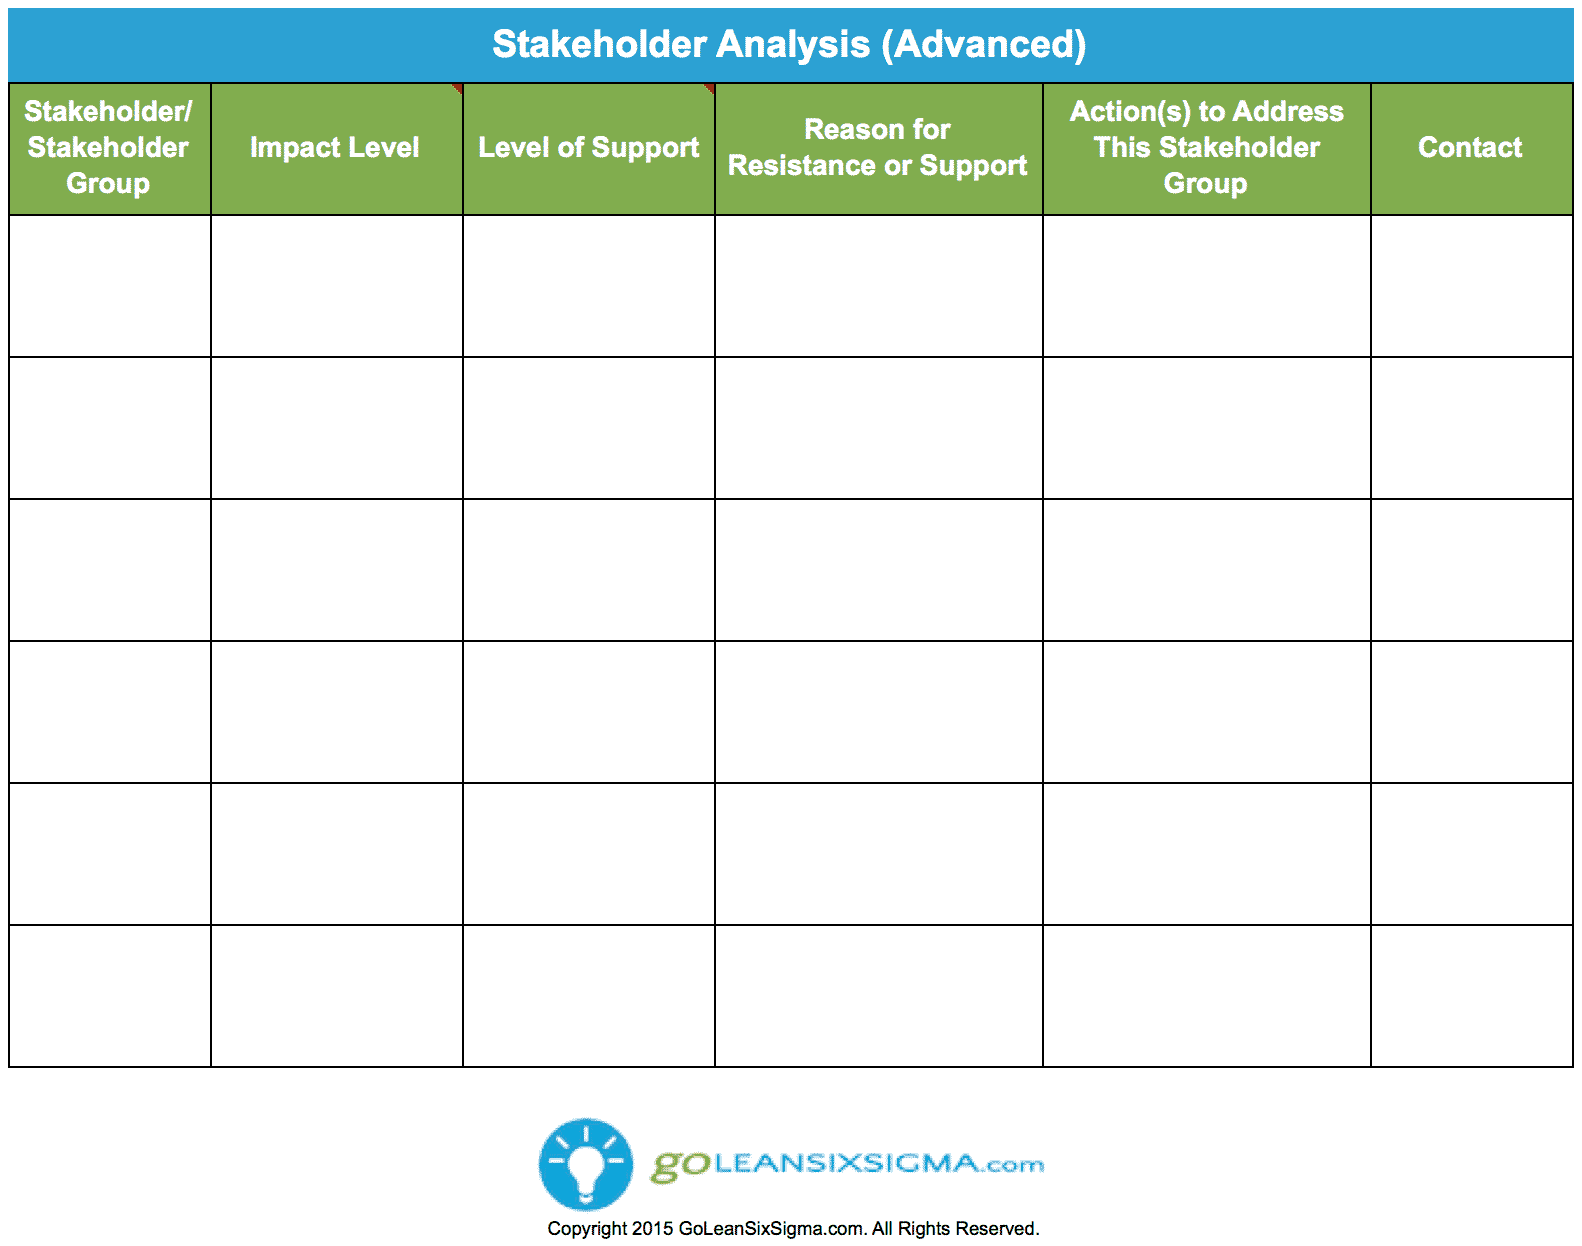 Lean six sigma templates archives page 3 of 5 goleansixsigma stakeholder analysis advanced 1betcityfo Gallery